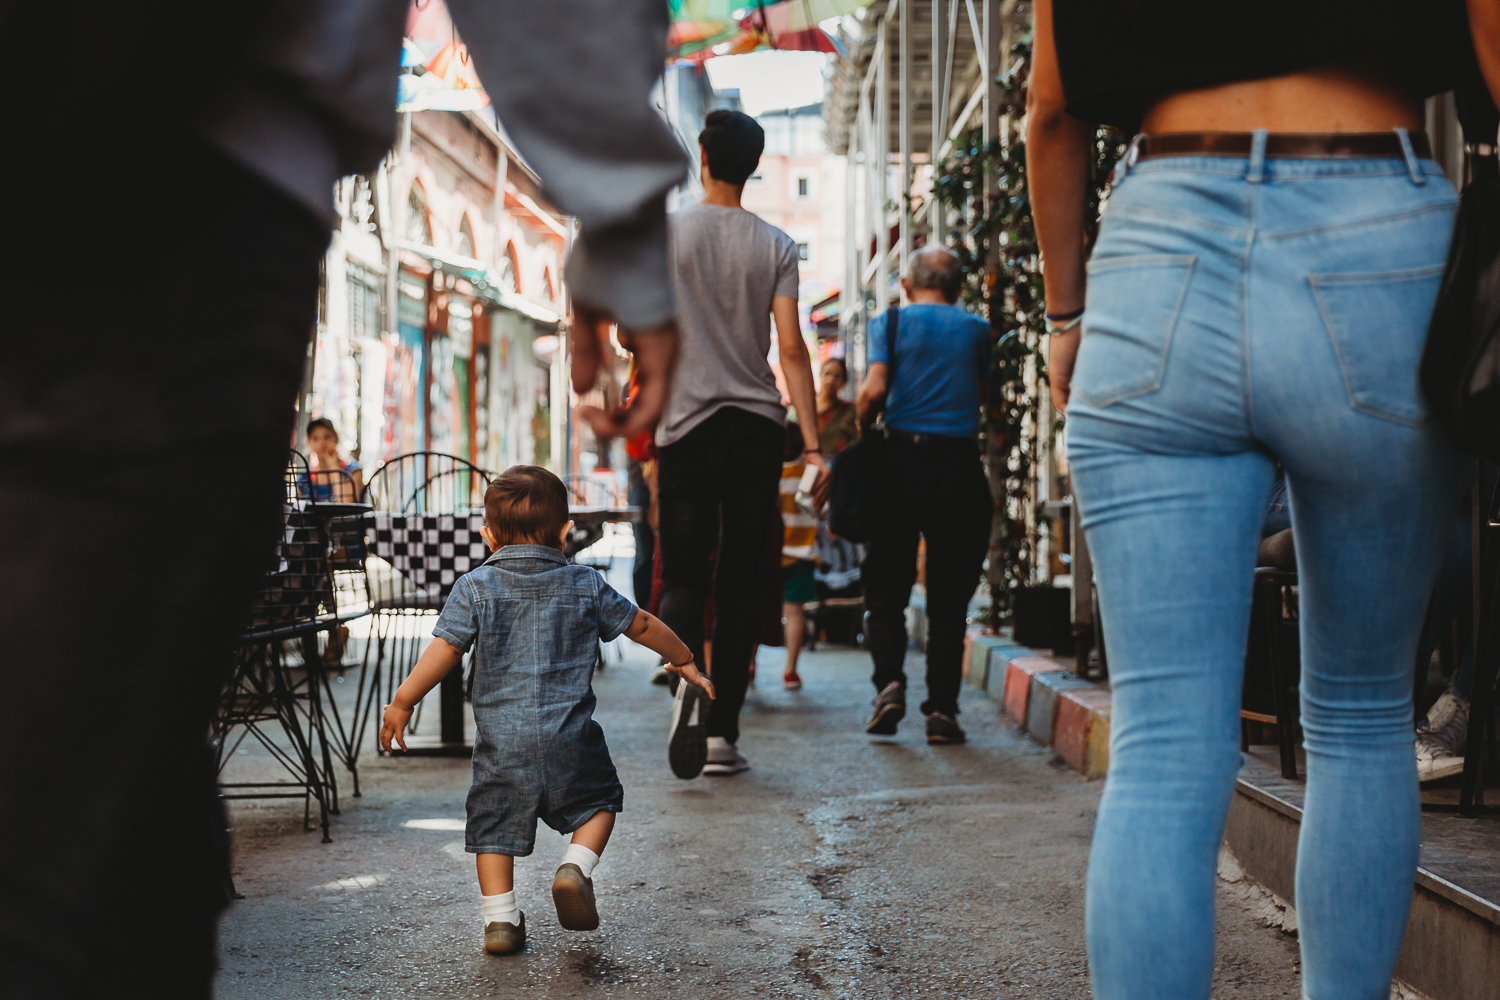 one year old walking on his own in a busy street